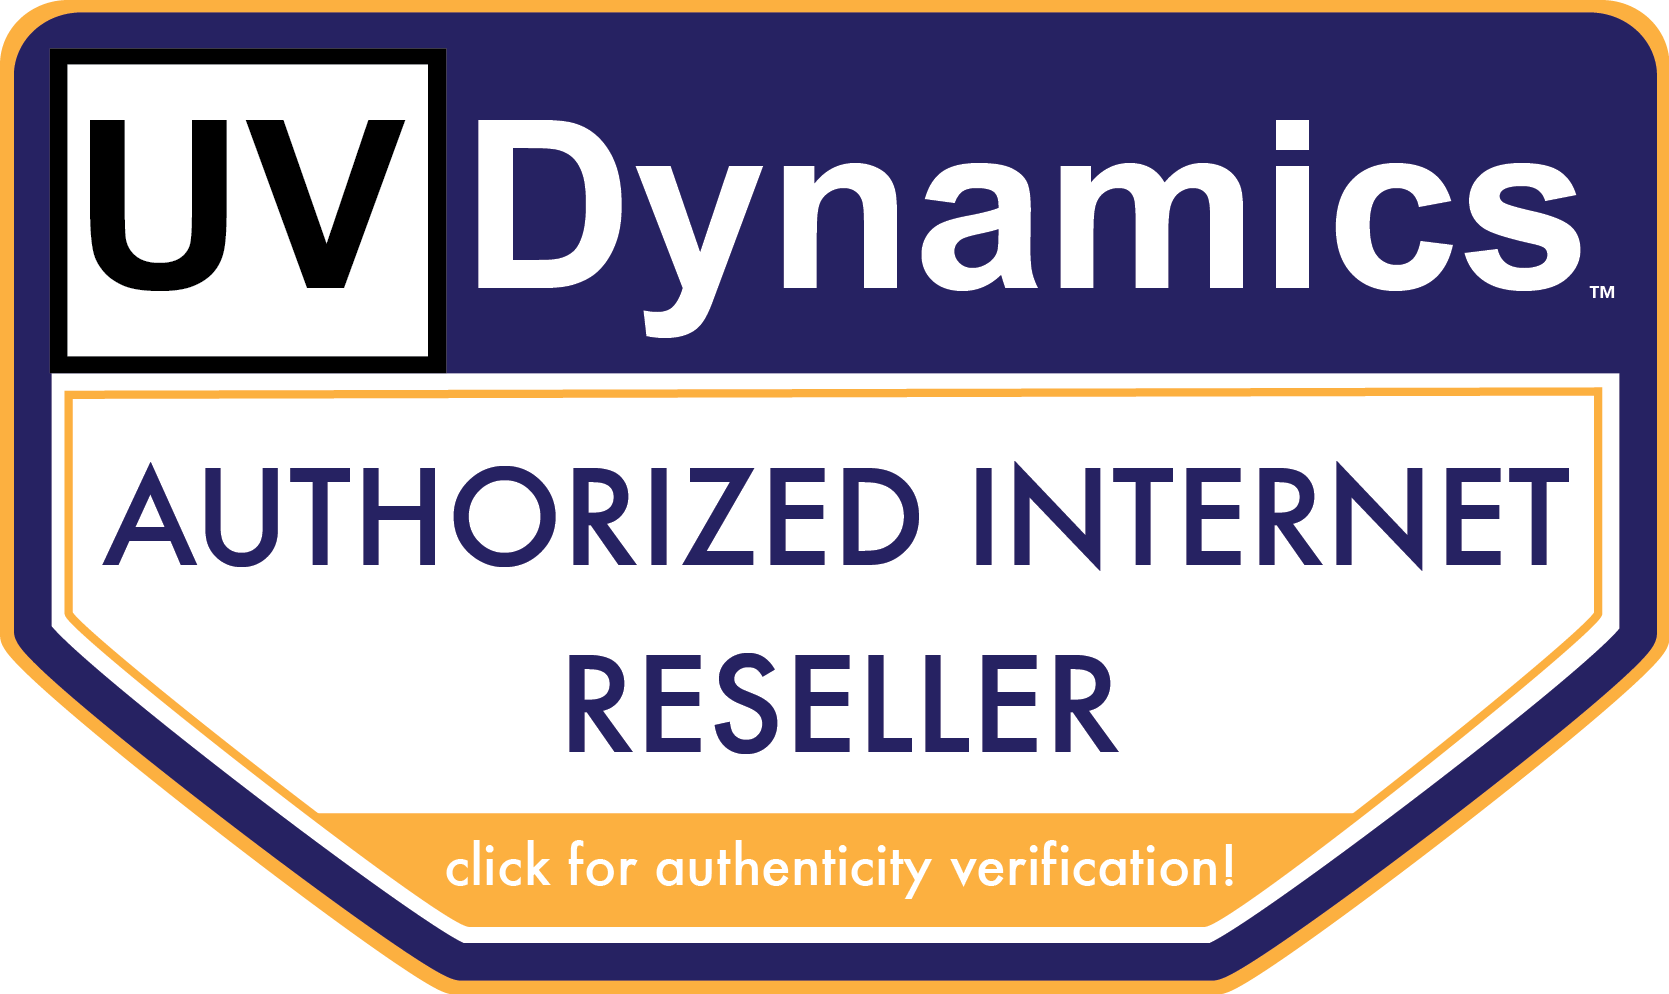 Wahl Water UVDynamics Authorized Internet Reseller